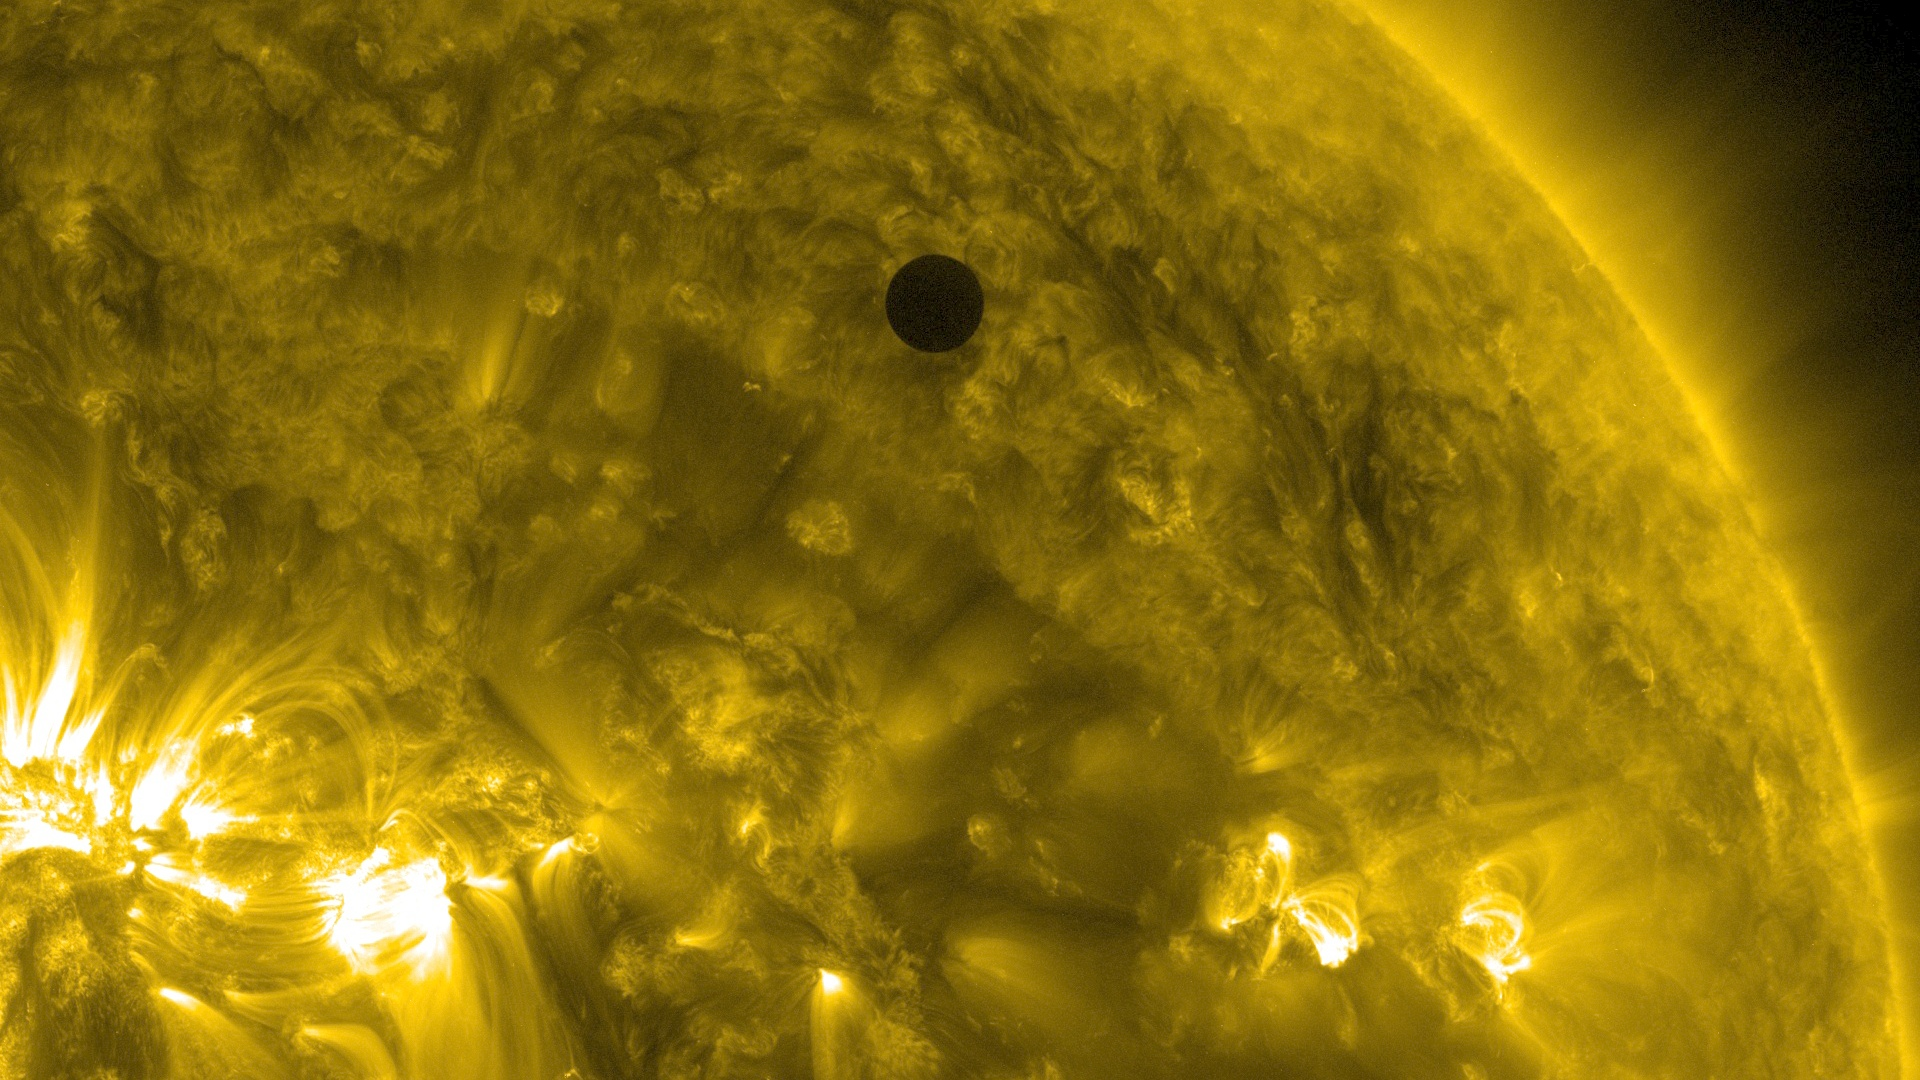 file:sdo's ultra-high definition view of 2012 venus transit (171